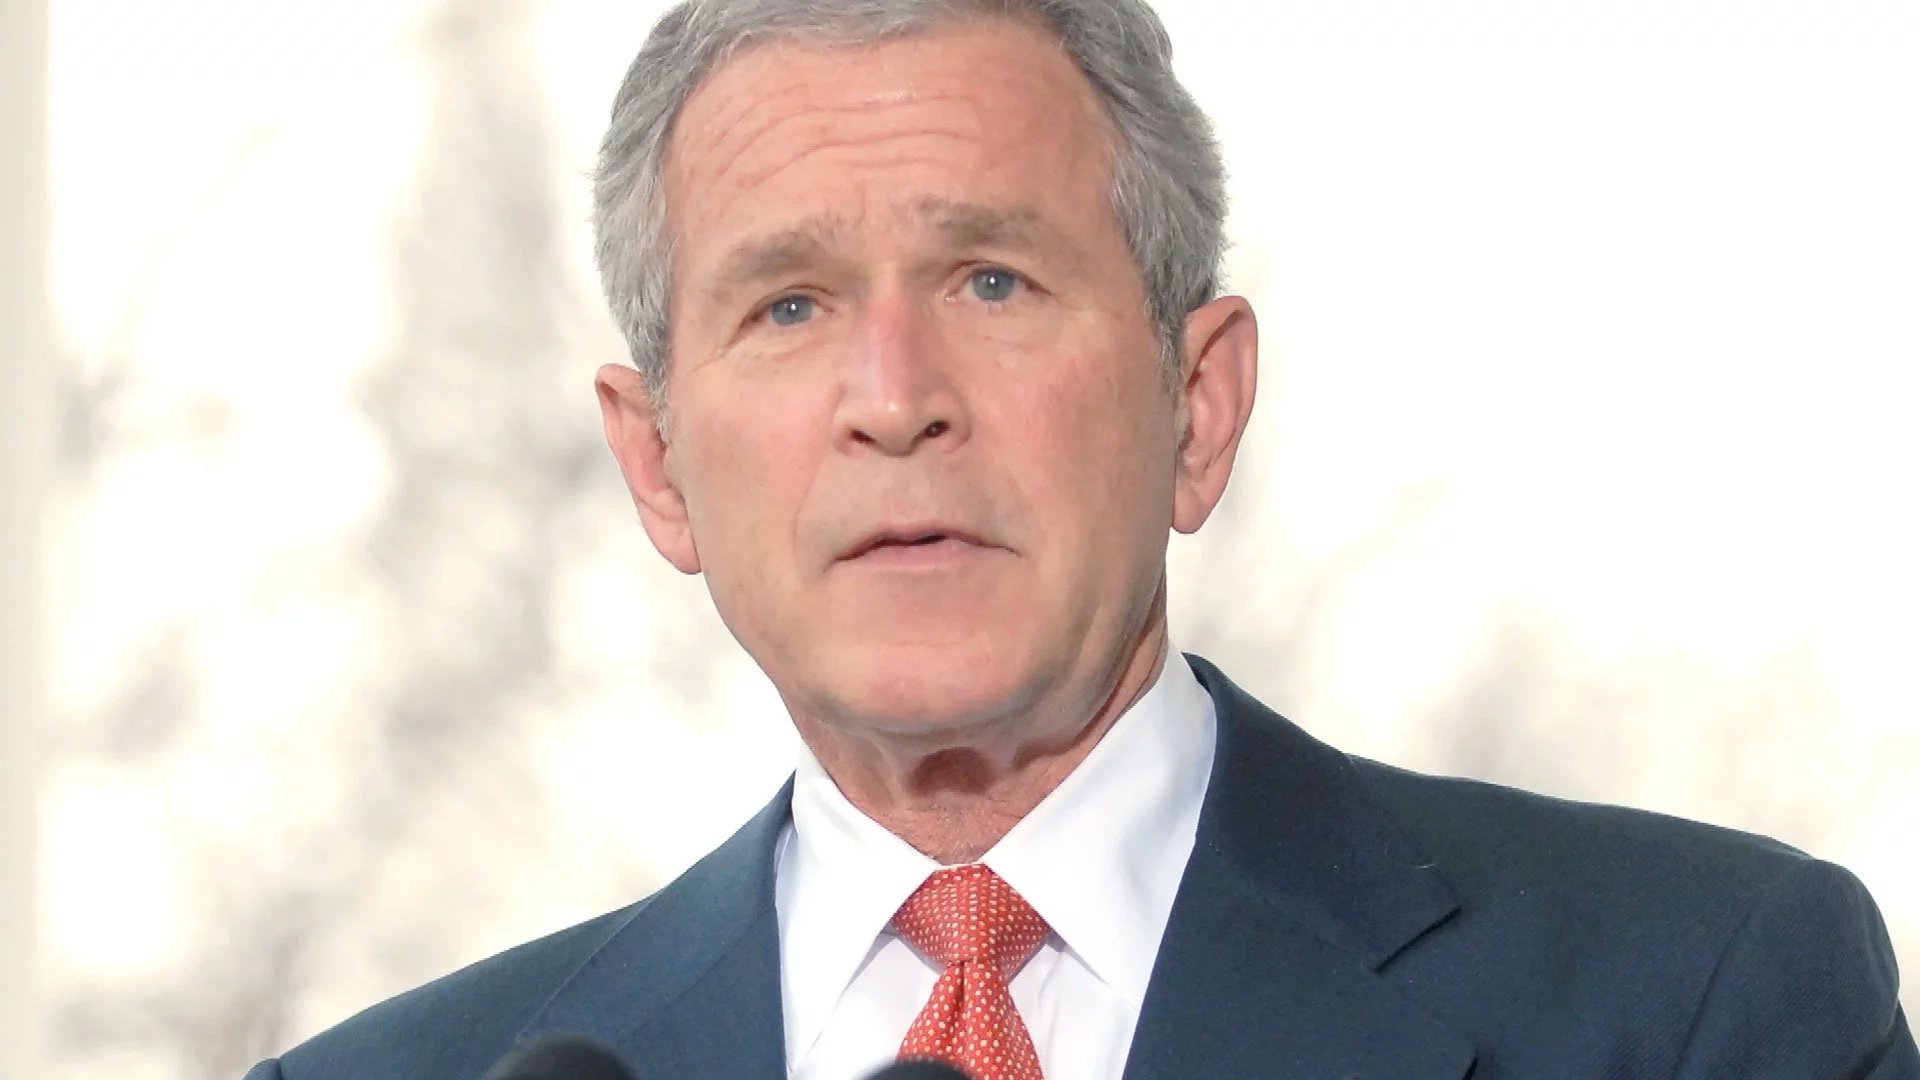 George W. Bush. Photo: AOL